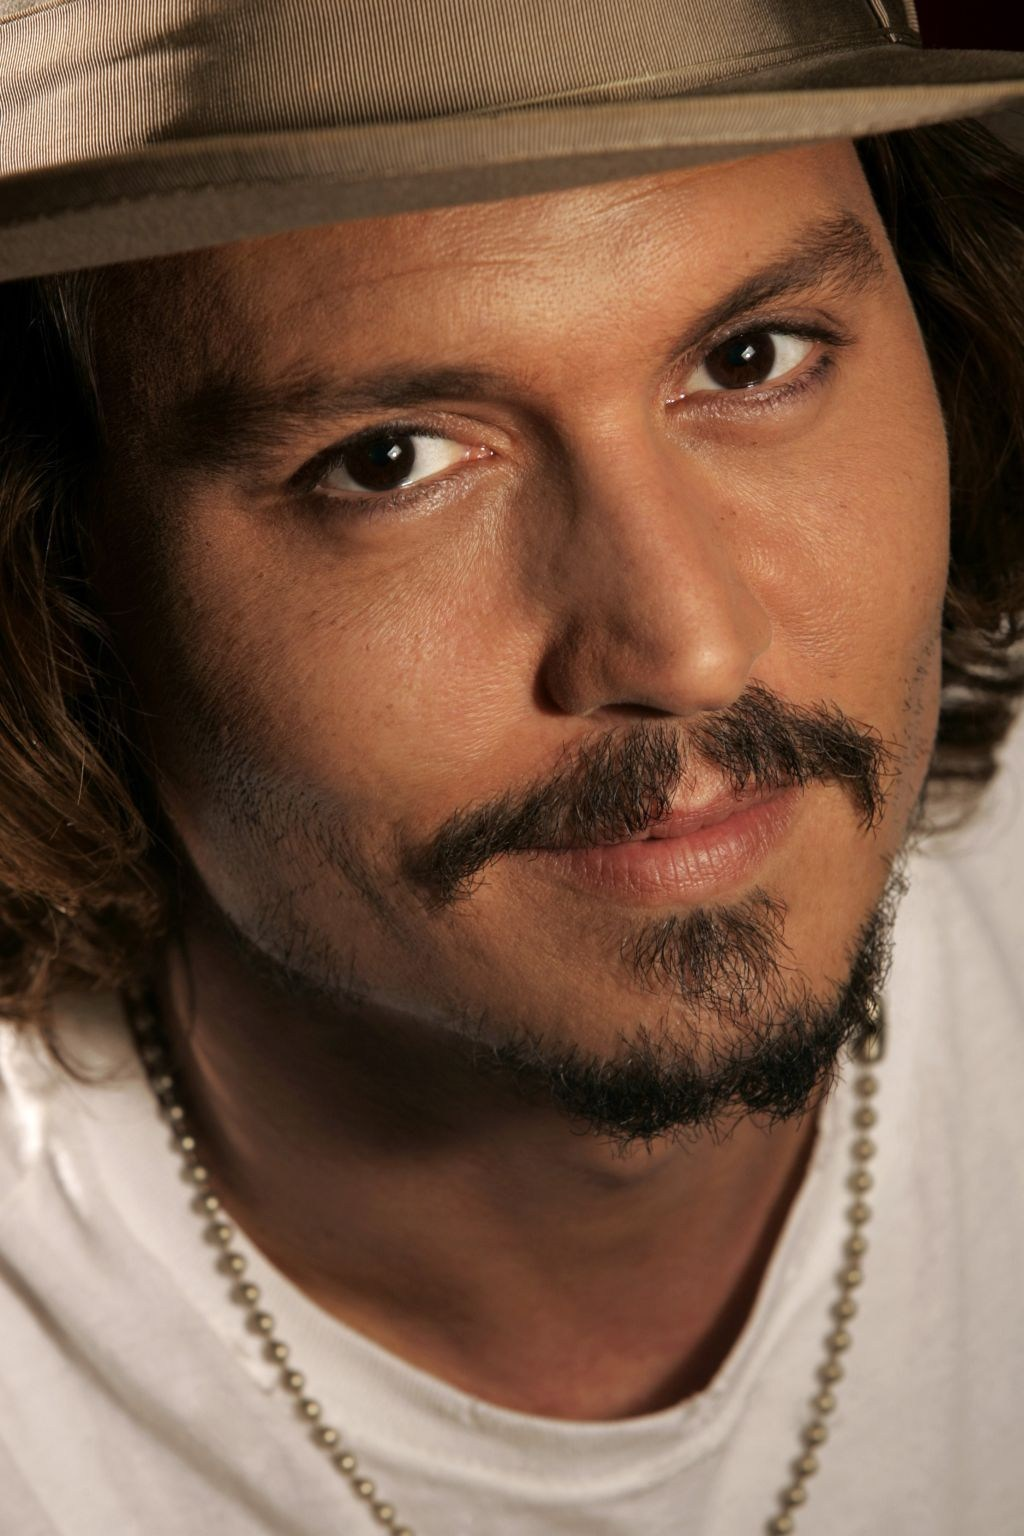 http://images6.fanpop.com/image/photos/34100000/Johnny-Depp-johnny-depp-34128752-1024-1536.jpg